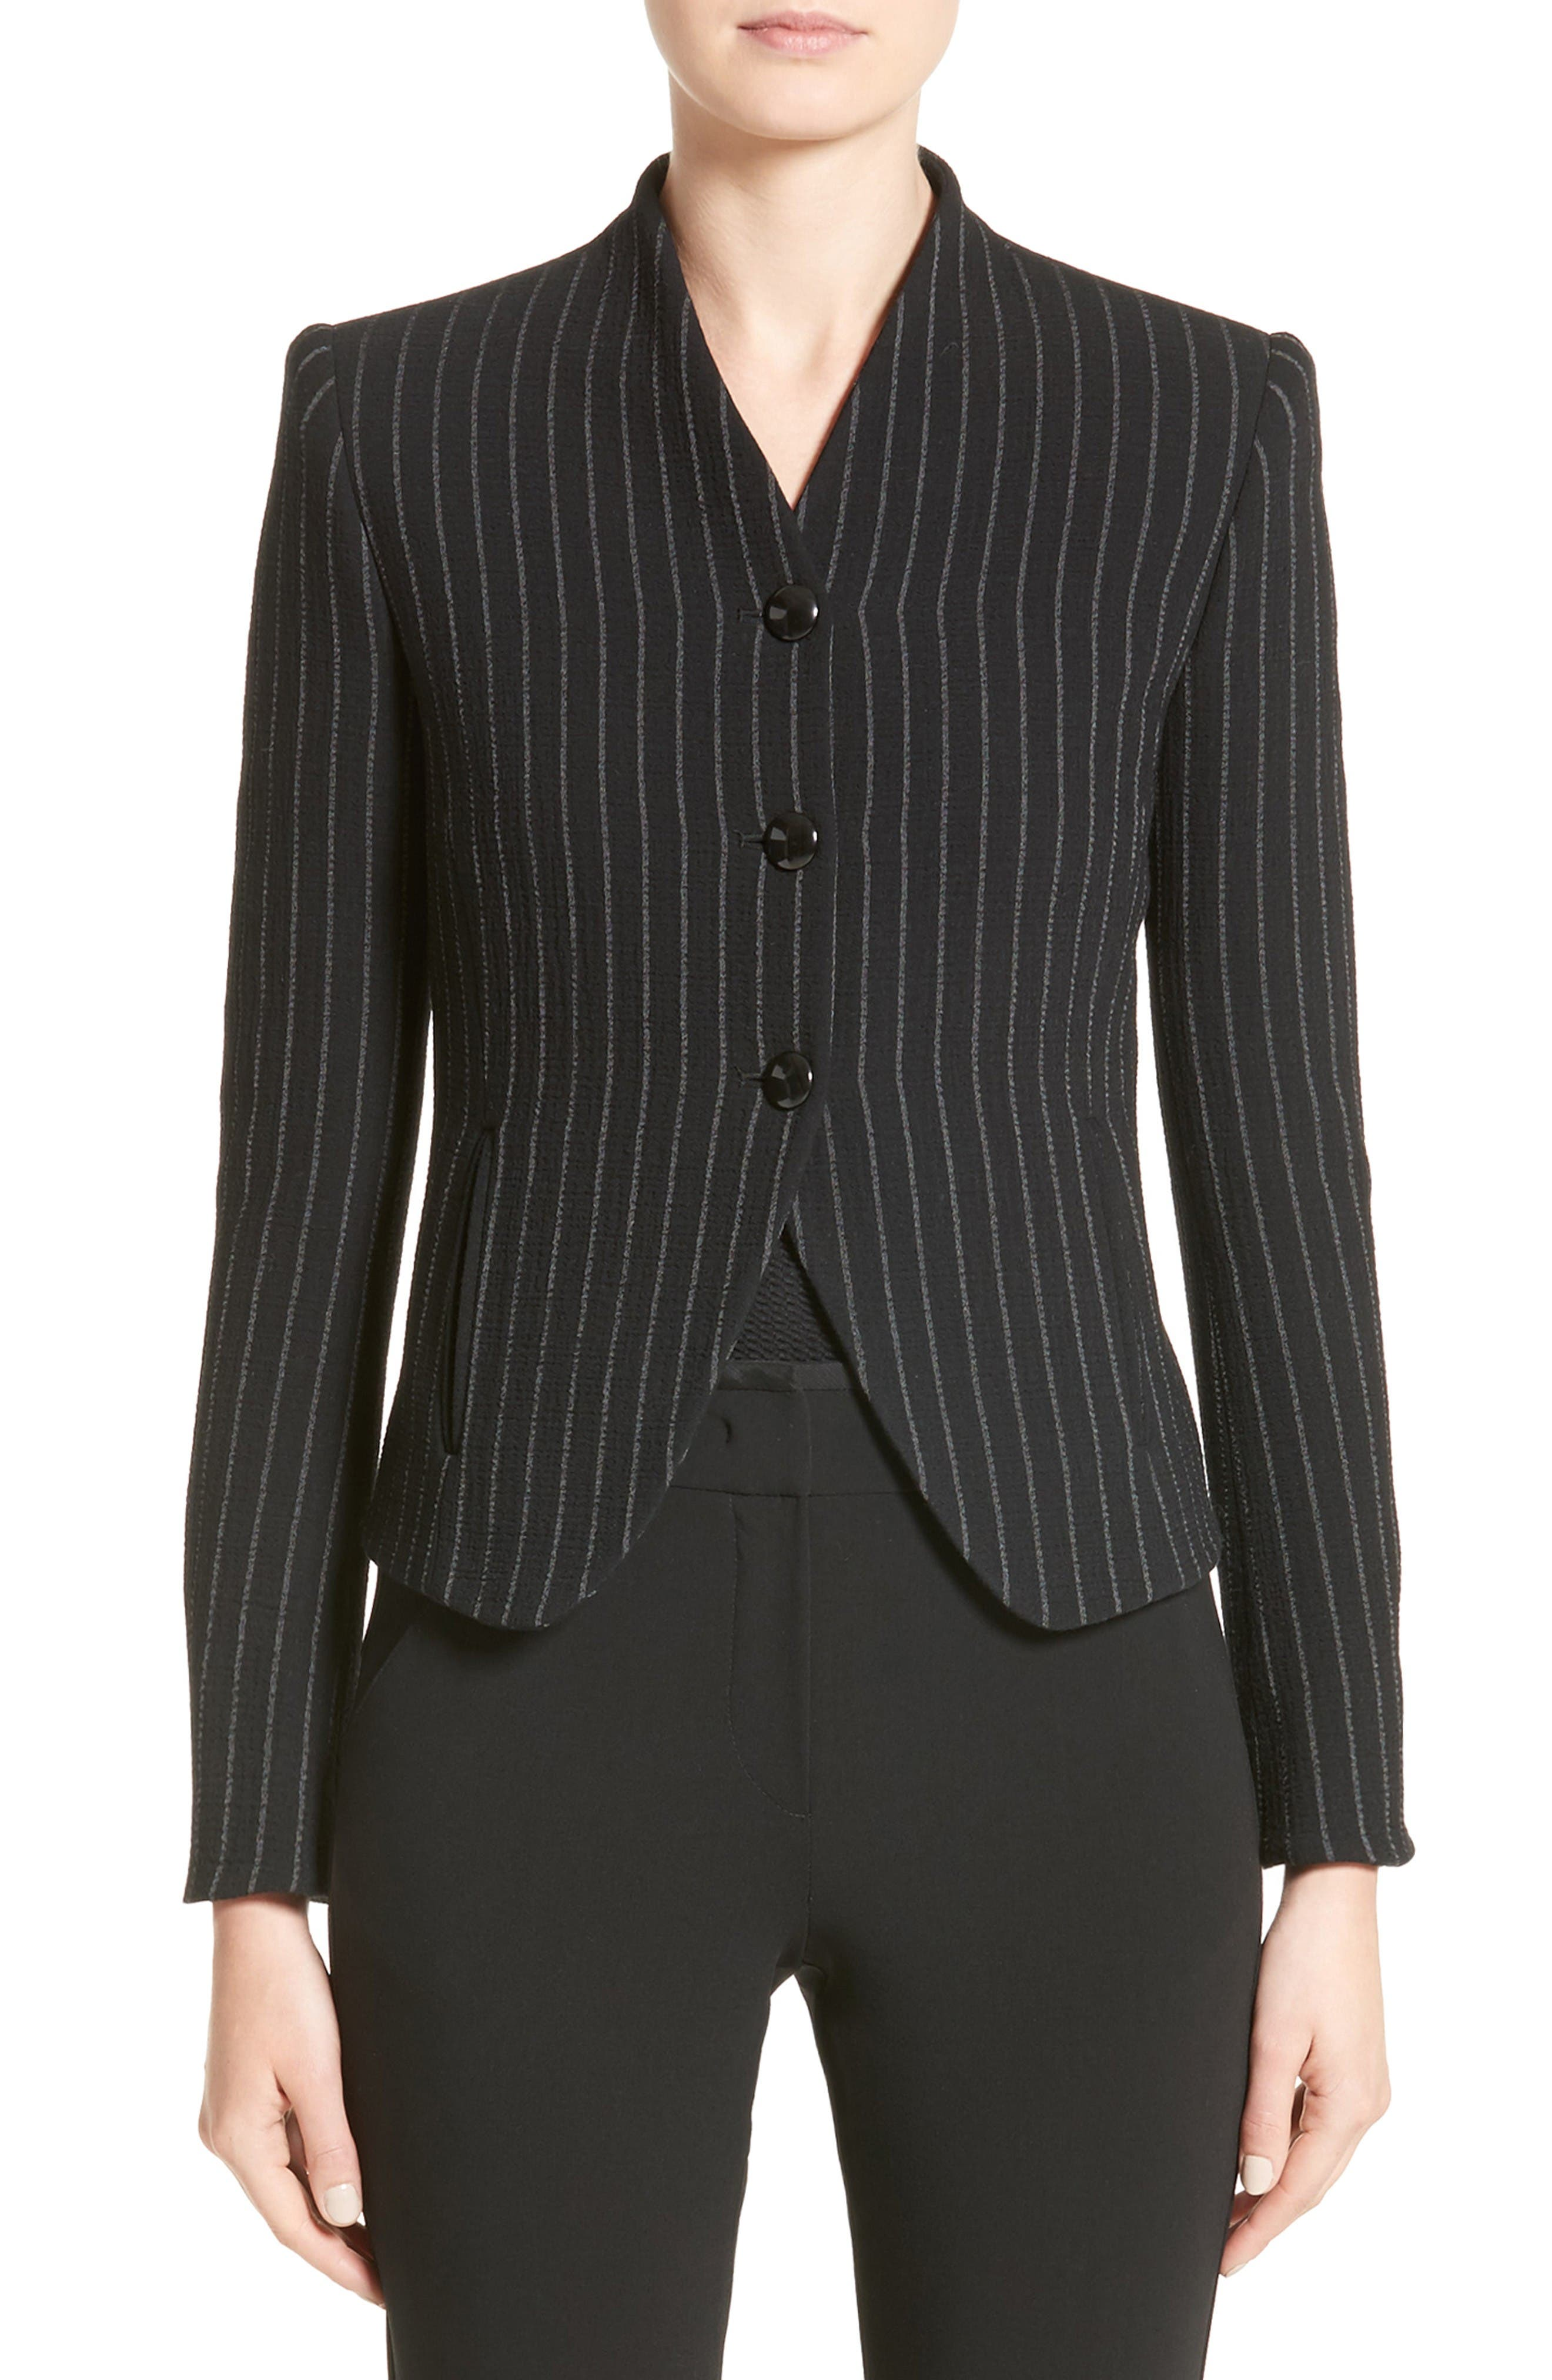 Stretch Wool Pinstripe Jacket,                             Main thumbnail 1, color,                             Black Grey Multi